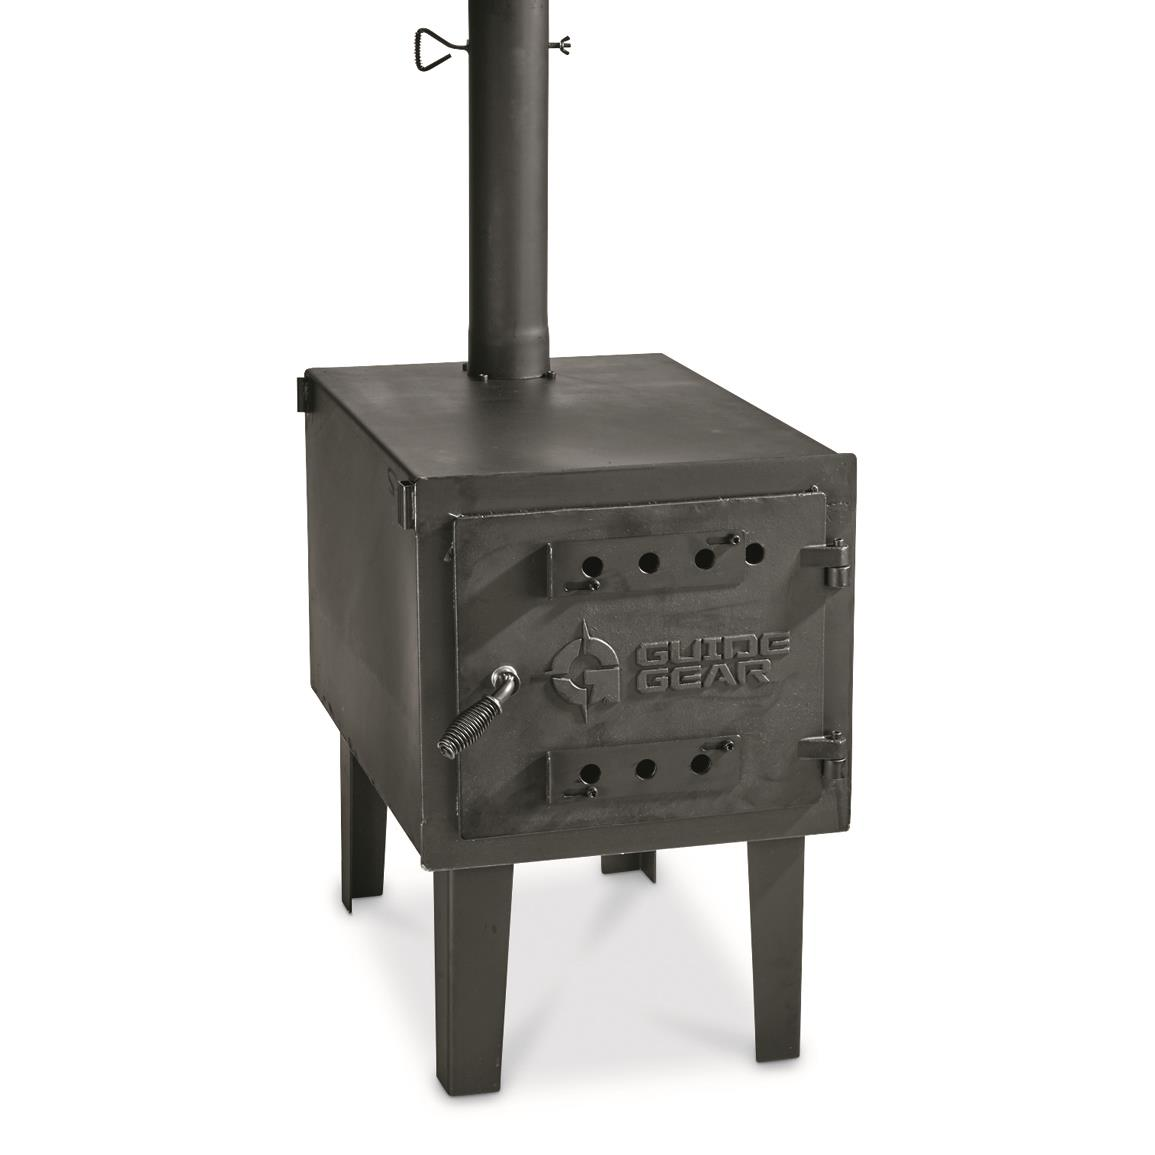 "Larger 24""l. x 17""w. x 15""h. firebox that produces an even greater heat output"